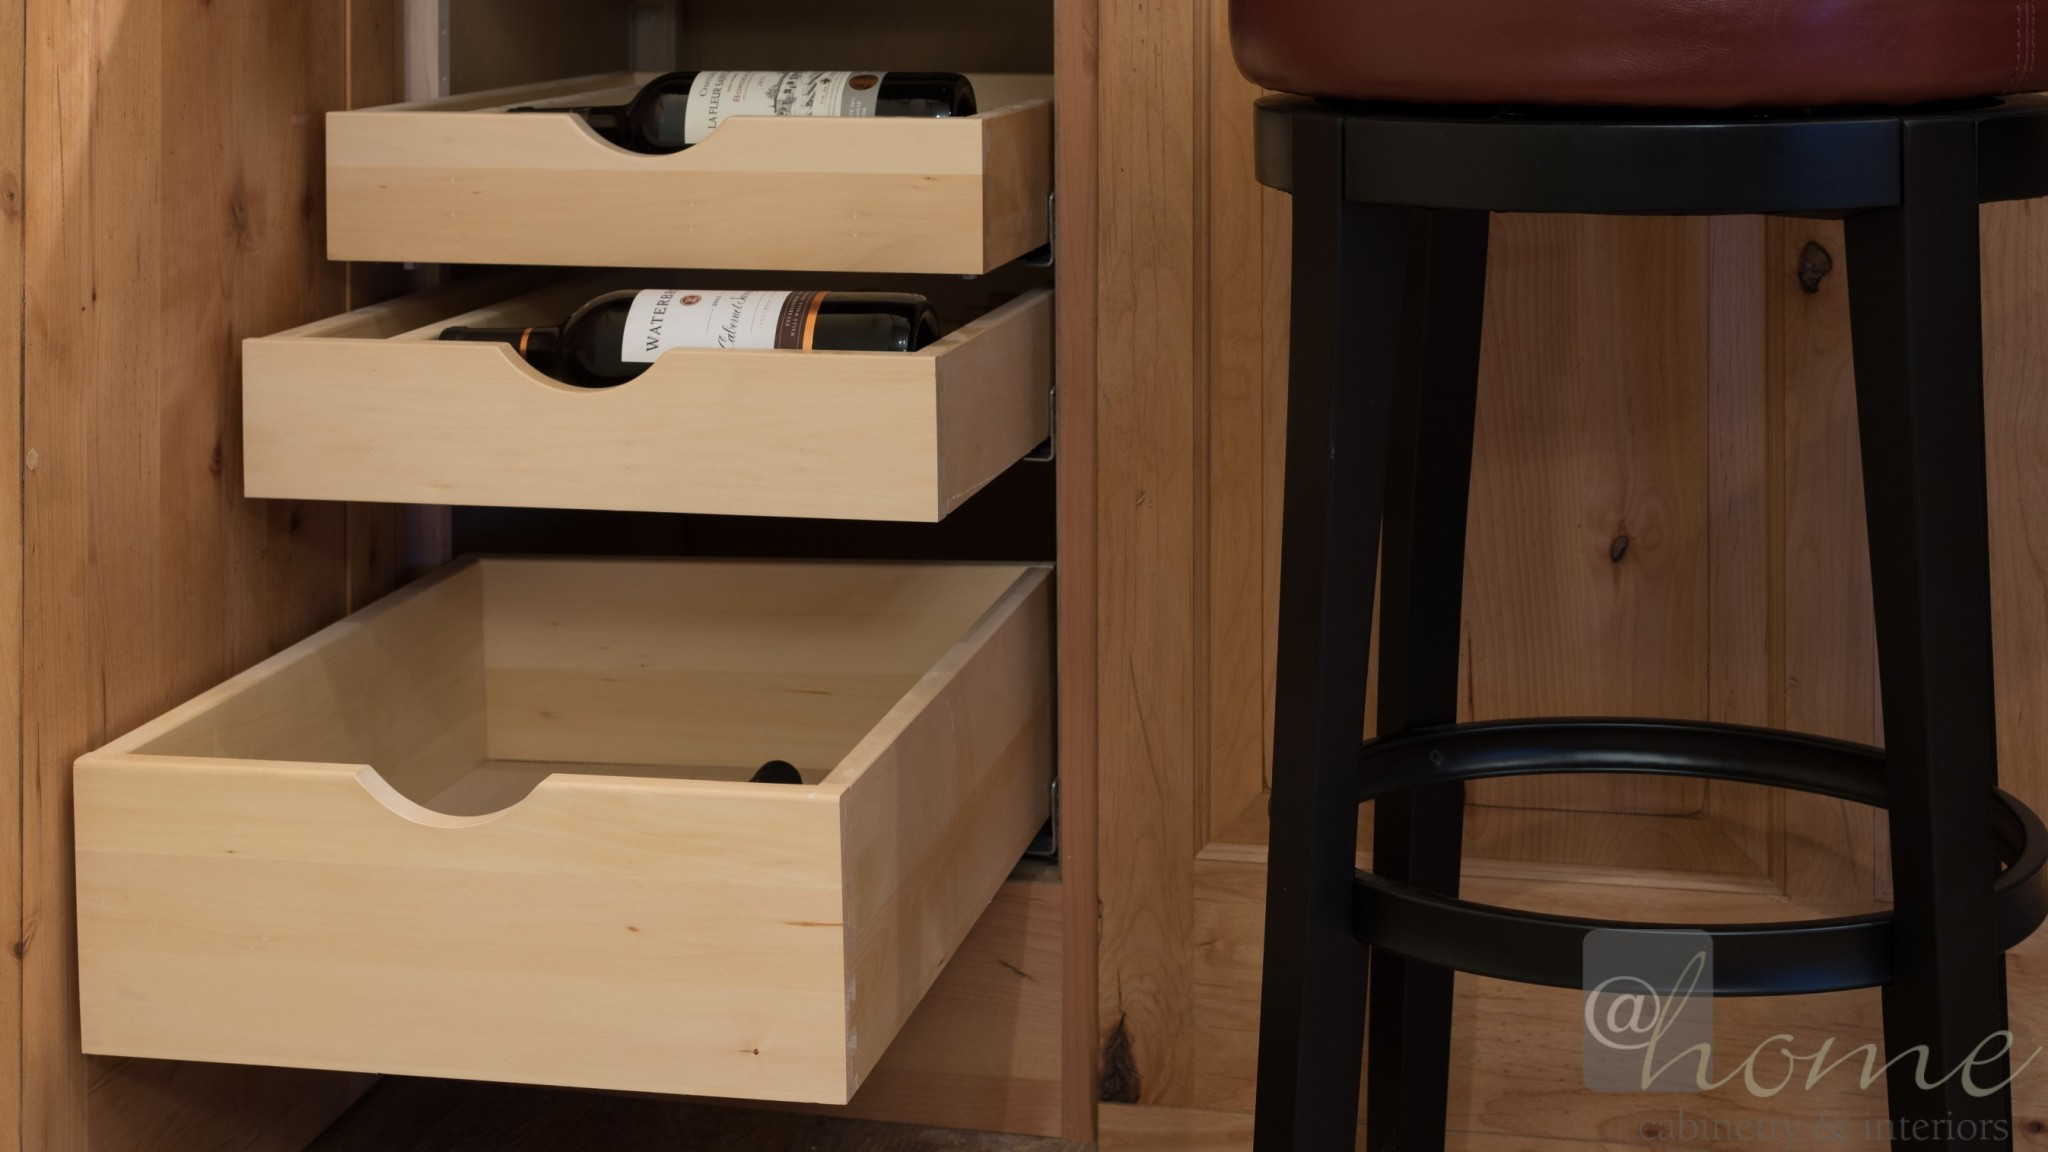 Hidden discreetly in the bar wainscot paneling: a touch latch door that reveals rollout wine storage drawers!